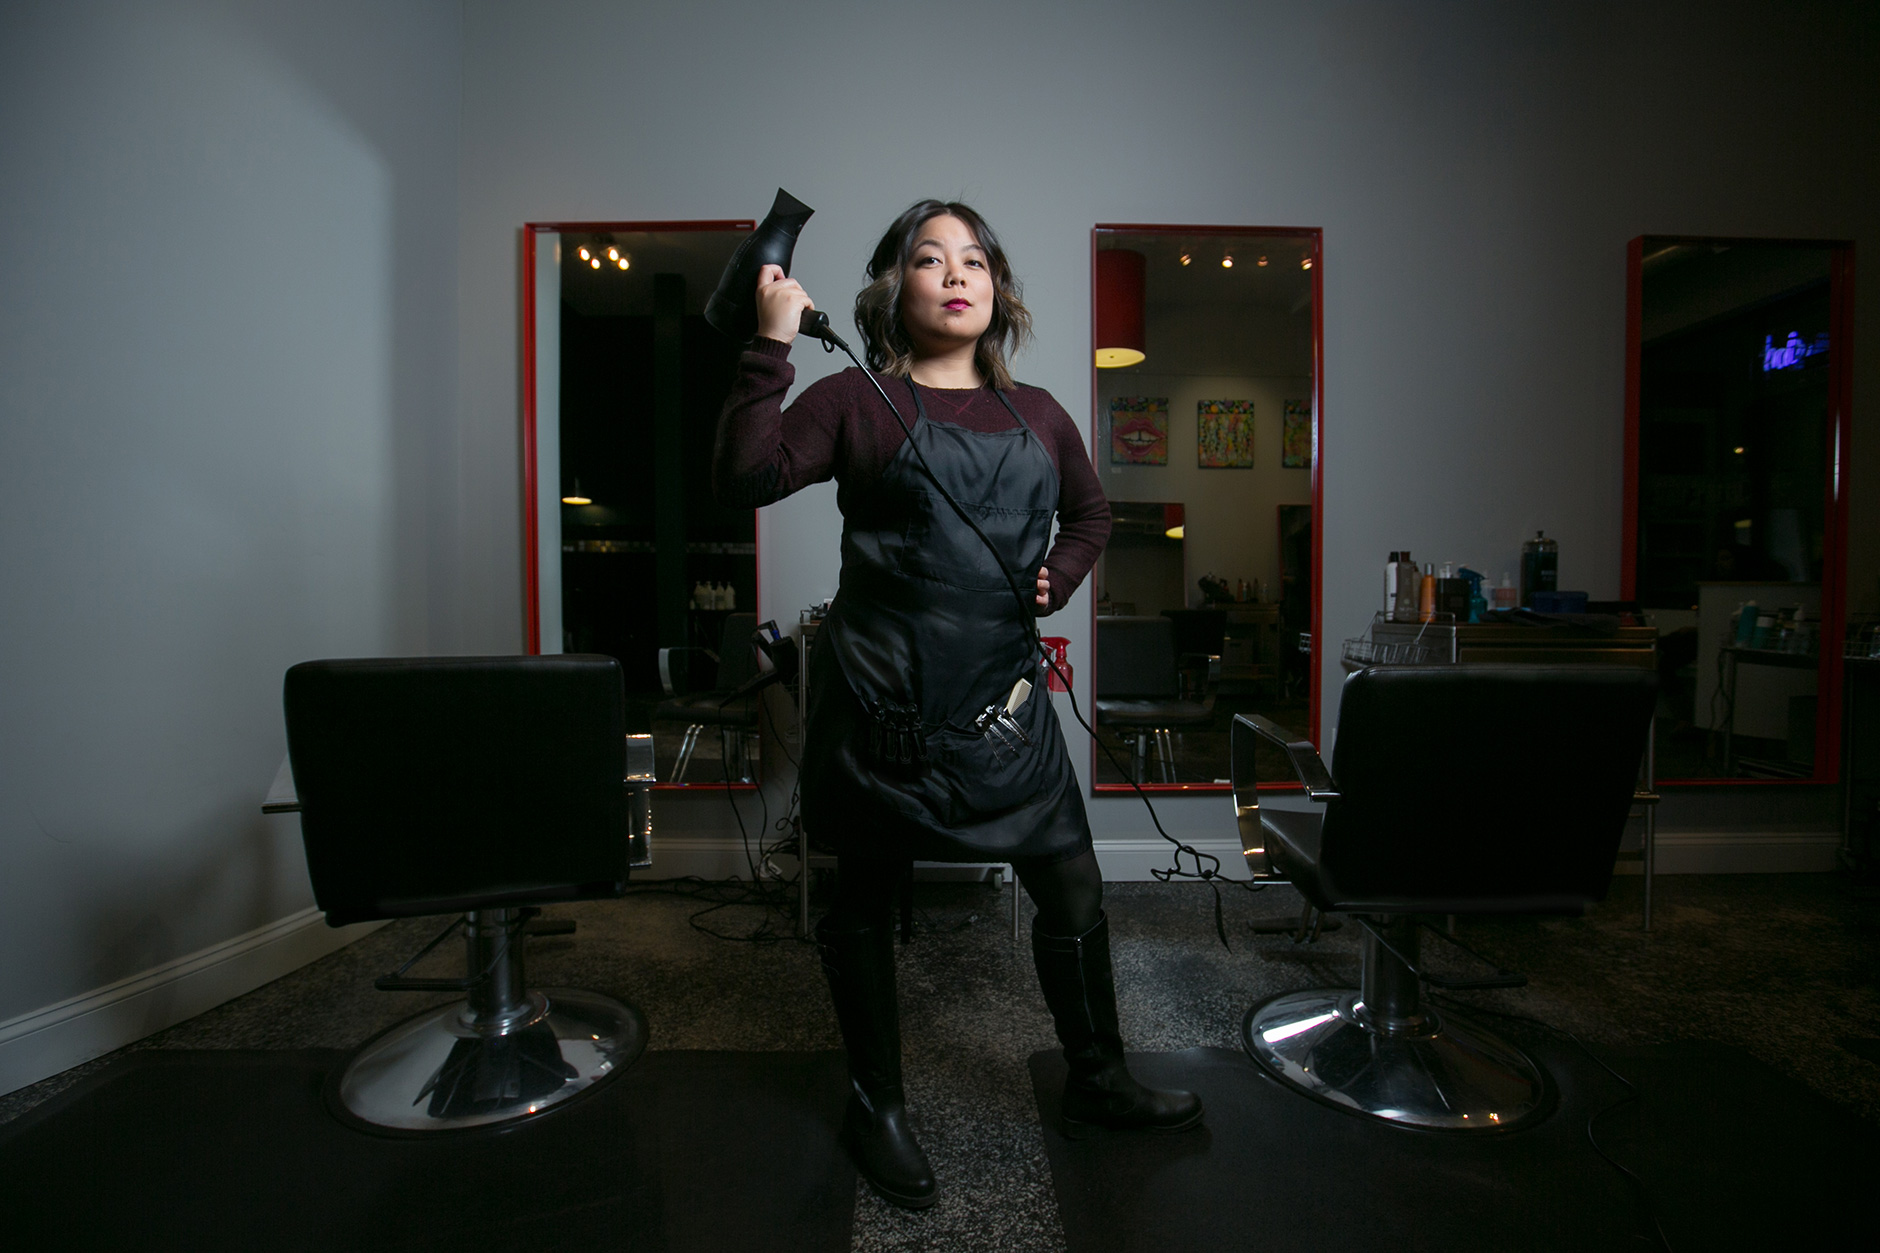 portrait-of-a-hairstylist-in-a-salon